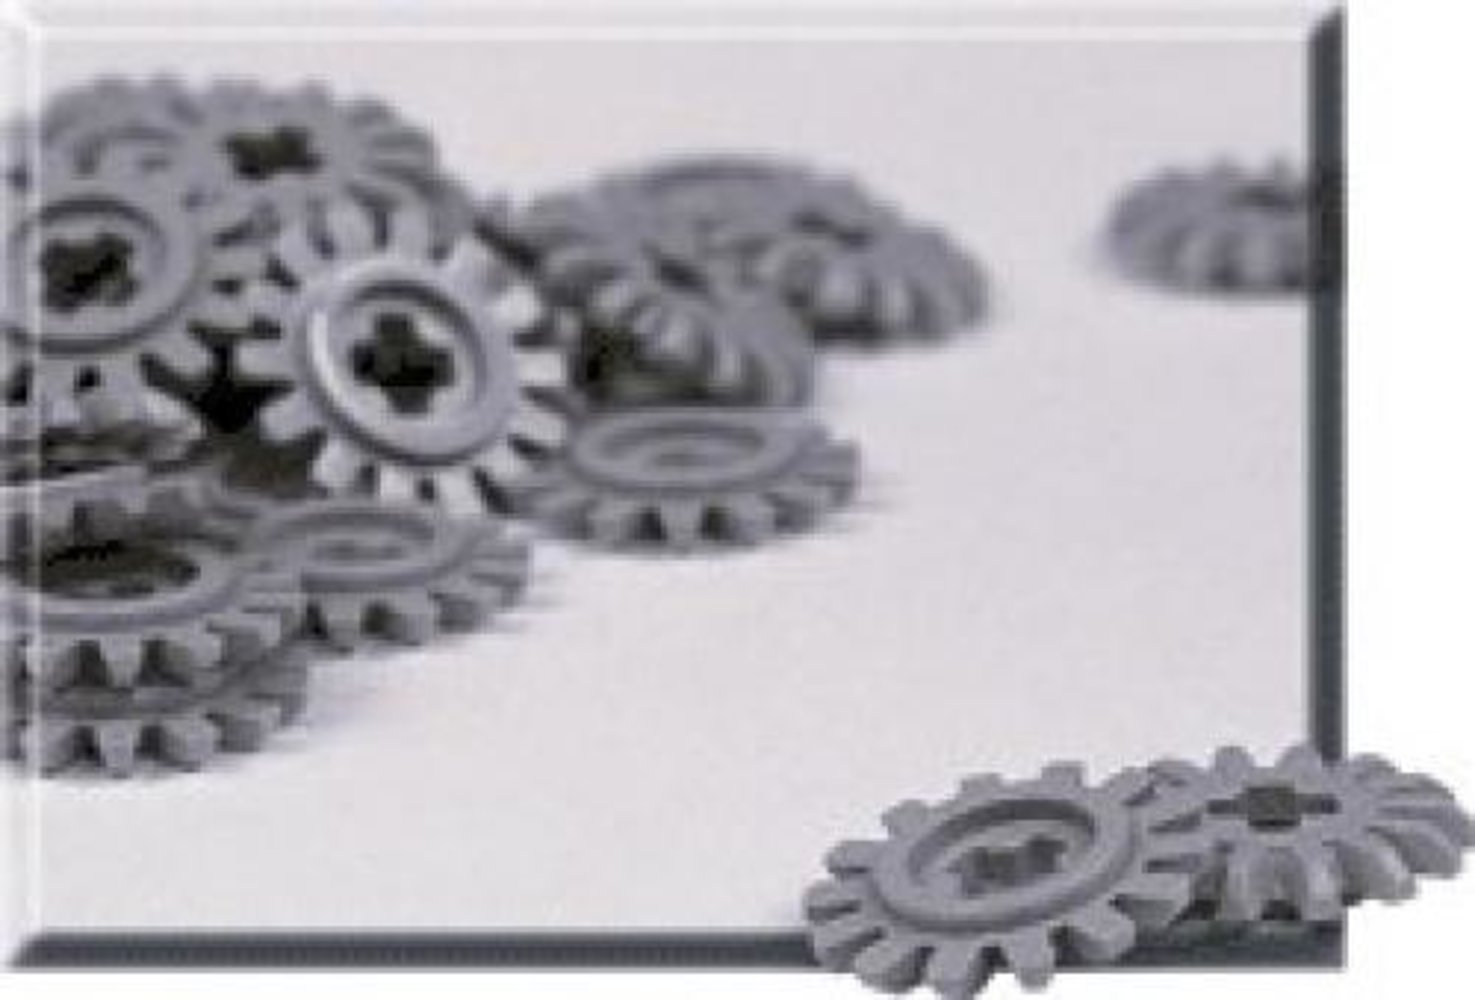 14-Tooth Beveled Gears (Pack of 100)